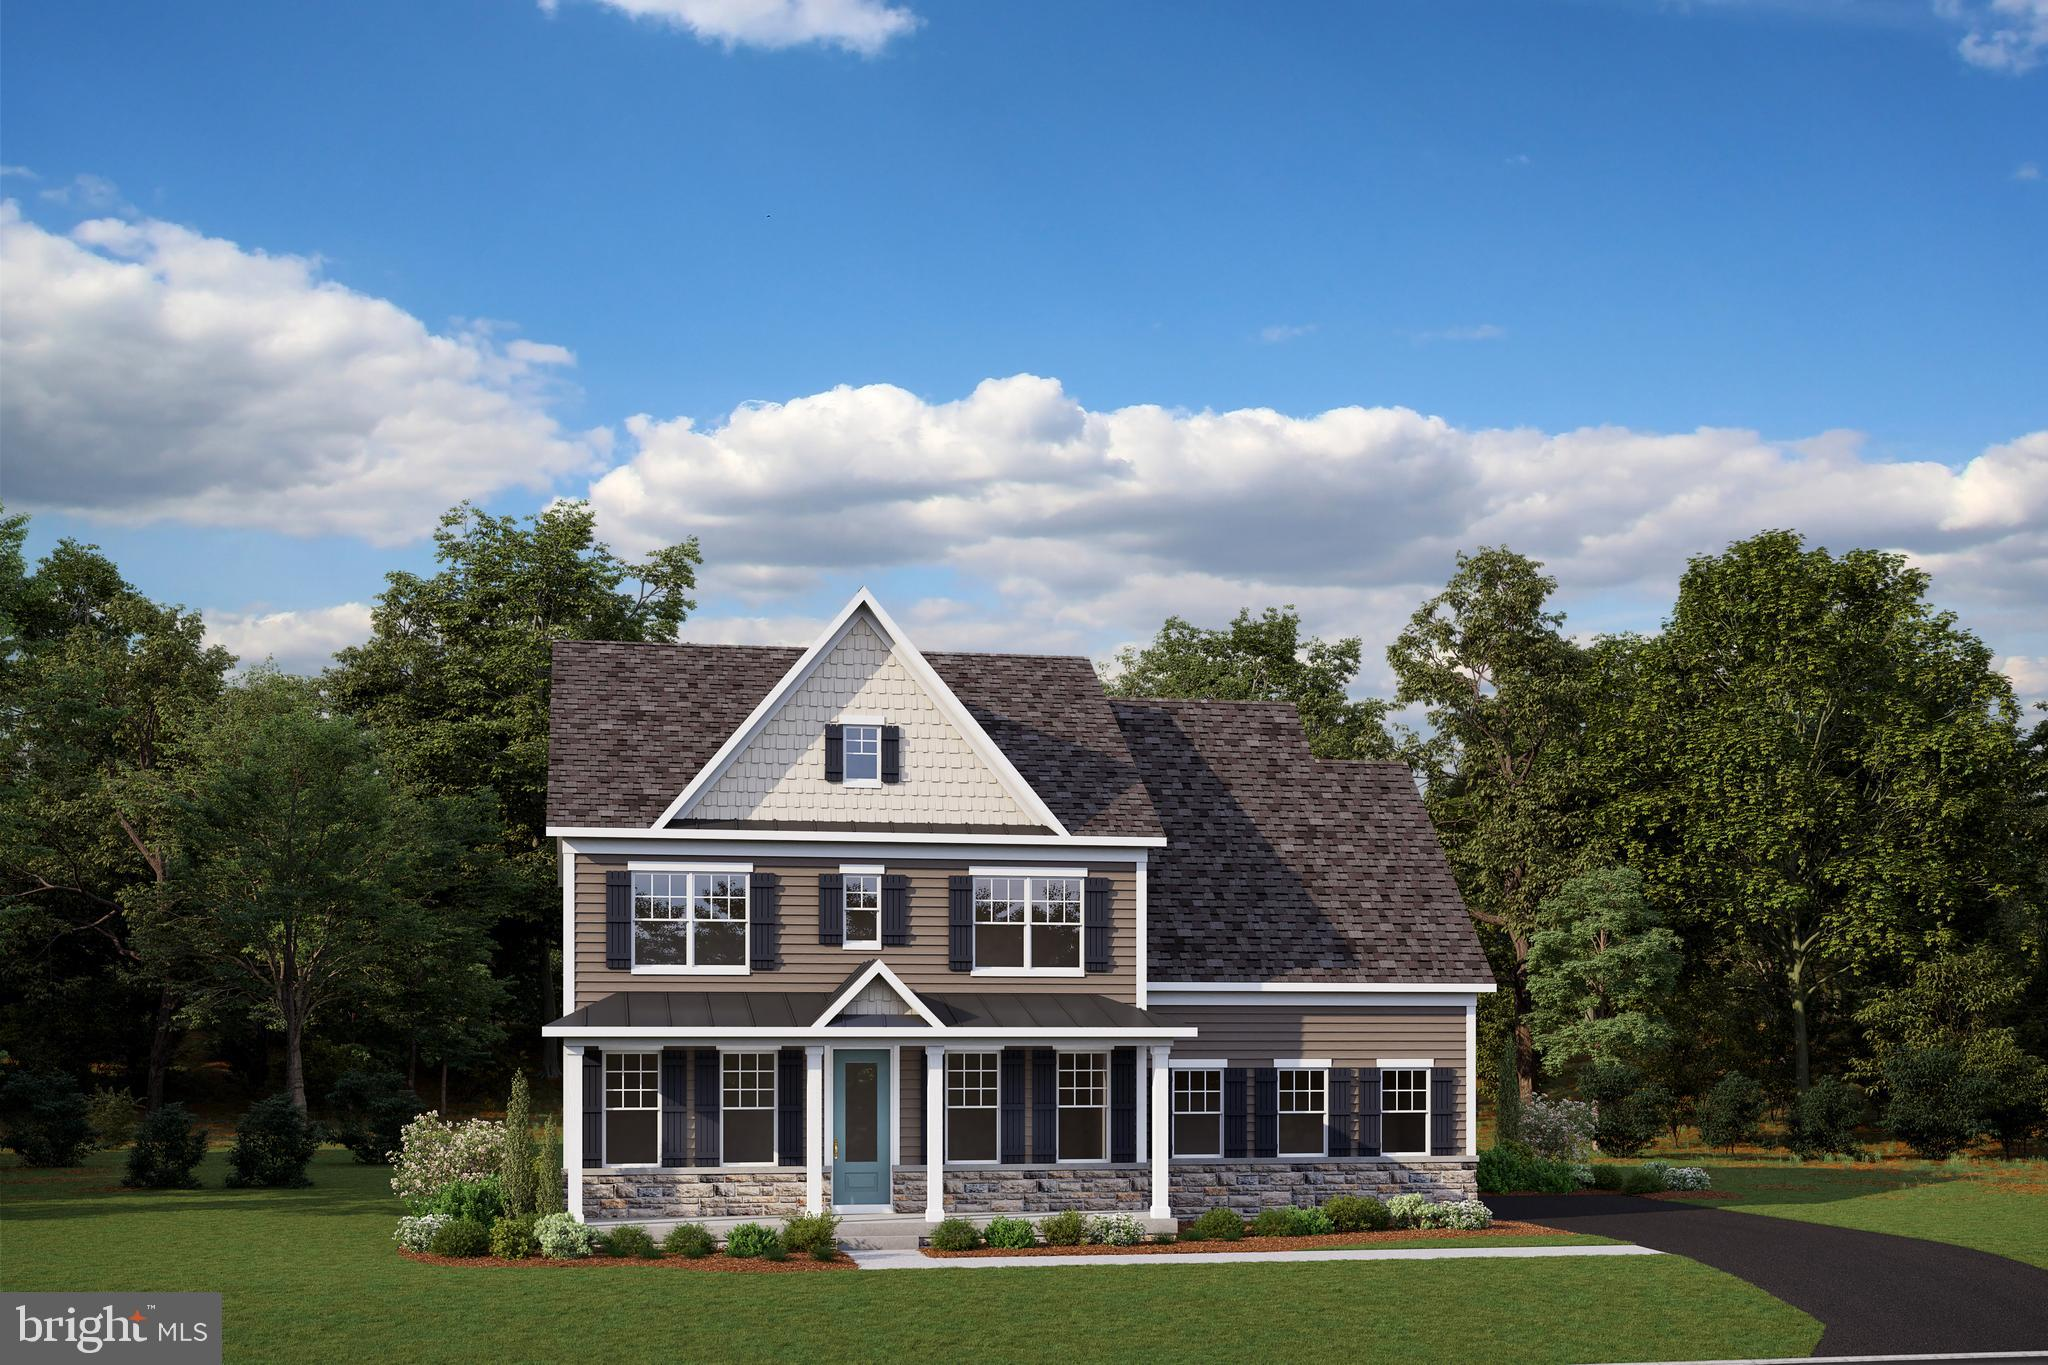 """Welcome to Greystone by NVHomes. Greystone features the only single family homes in a neighborhood with sidewalks, rolling hills, and seven miles of trails just minutes from the Borough. The Liberty at Greystone is a modern home for today's family lifestyles. Your stately new home will feature a hardieplank exterior facade with a two-car side entry garage and a covered front portico for greeting guests in style. Inside, the main living level boasts luxury features such as 5"""" hardwood floors, crown moulding, and oak stairs. As you enter into your gourmet kitchen you'll find a grand kitchen island with upgraded CushionClose cabinetry and quartz countertops. Need to work from home? An included private study awaits you off kitchen. Retreat upstairs to a primary suite with spa bath, including two full walk-in closets. Secondary bedrooms include sizable closets and access to two additional upper level bathrooms. An optional finished lower level is the perfect spot for game night. You will love to call Greystone your new home!  Other floorplans and homesites are available. Photos are representative."""